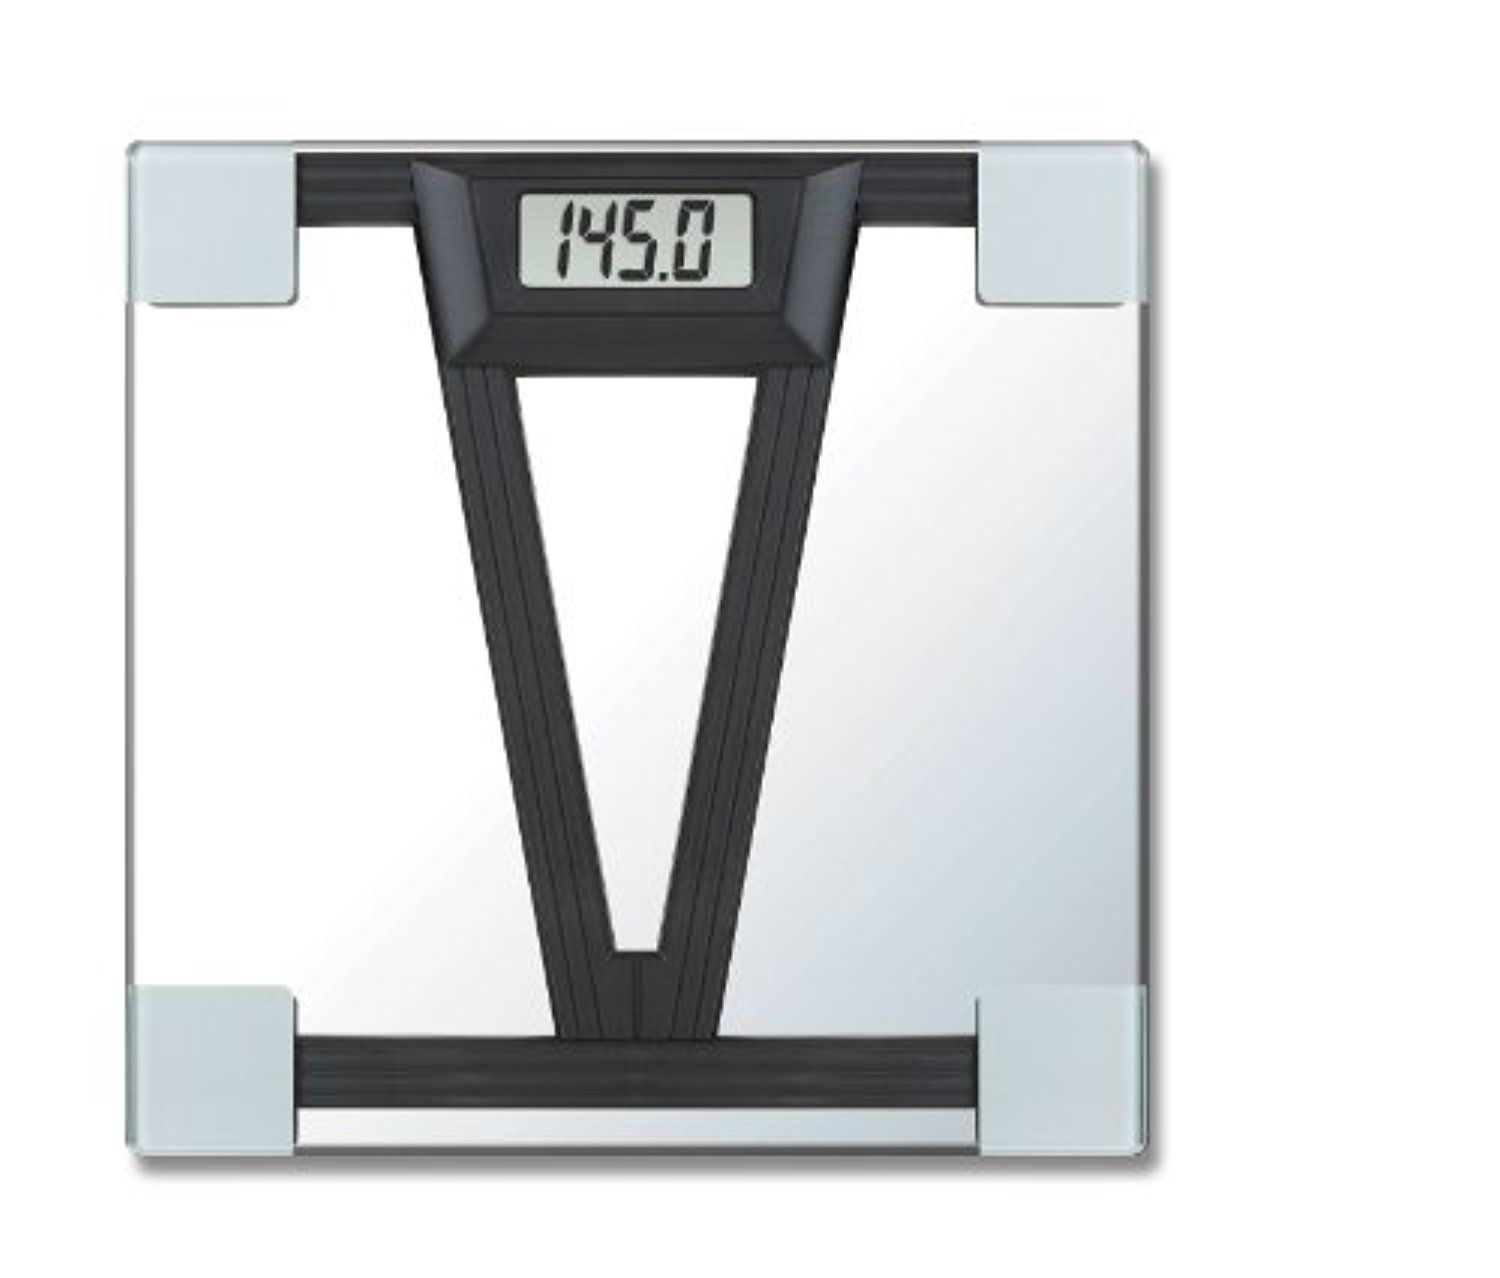 Ideas In Motionts 6 2304 Lcd Display Talking Body Weight Bathroom Scale Large By Ideas In Motion Awesome Digital Scale Bathroom Bathroom Scale Body Weight